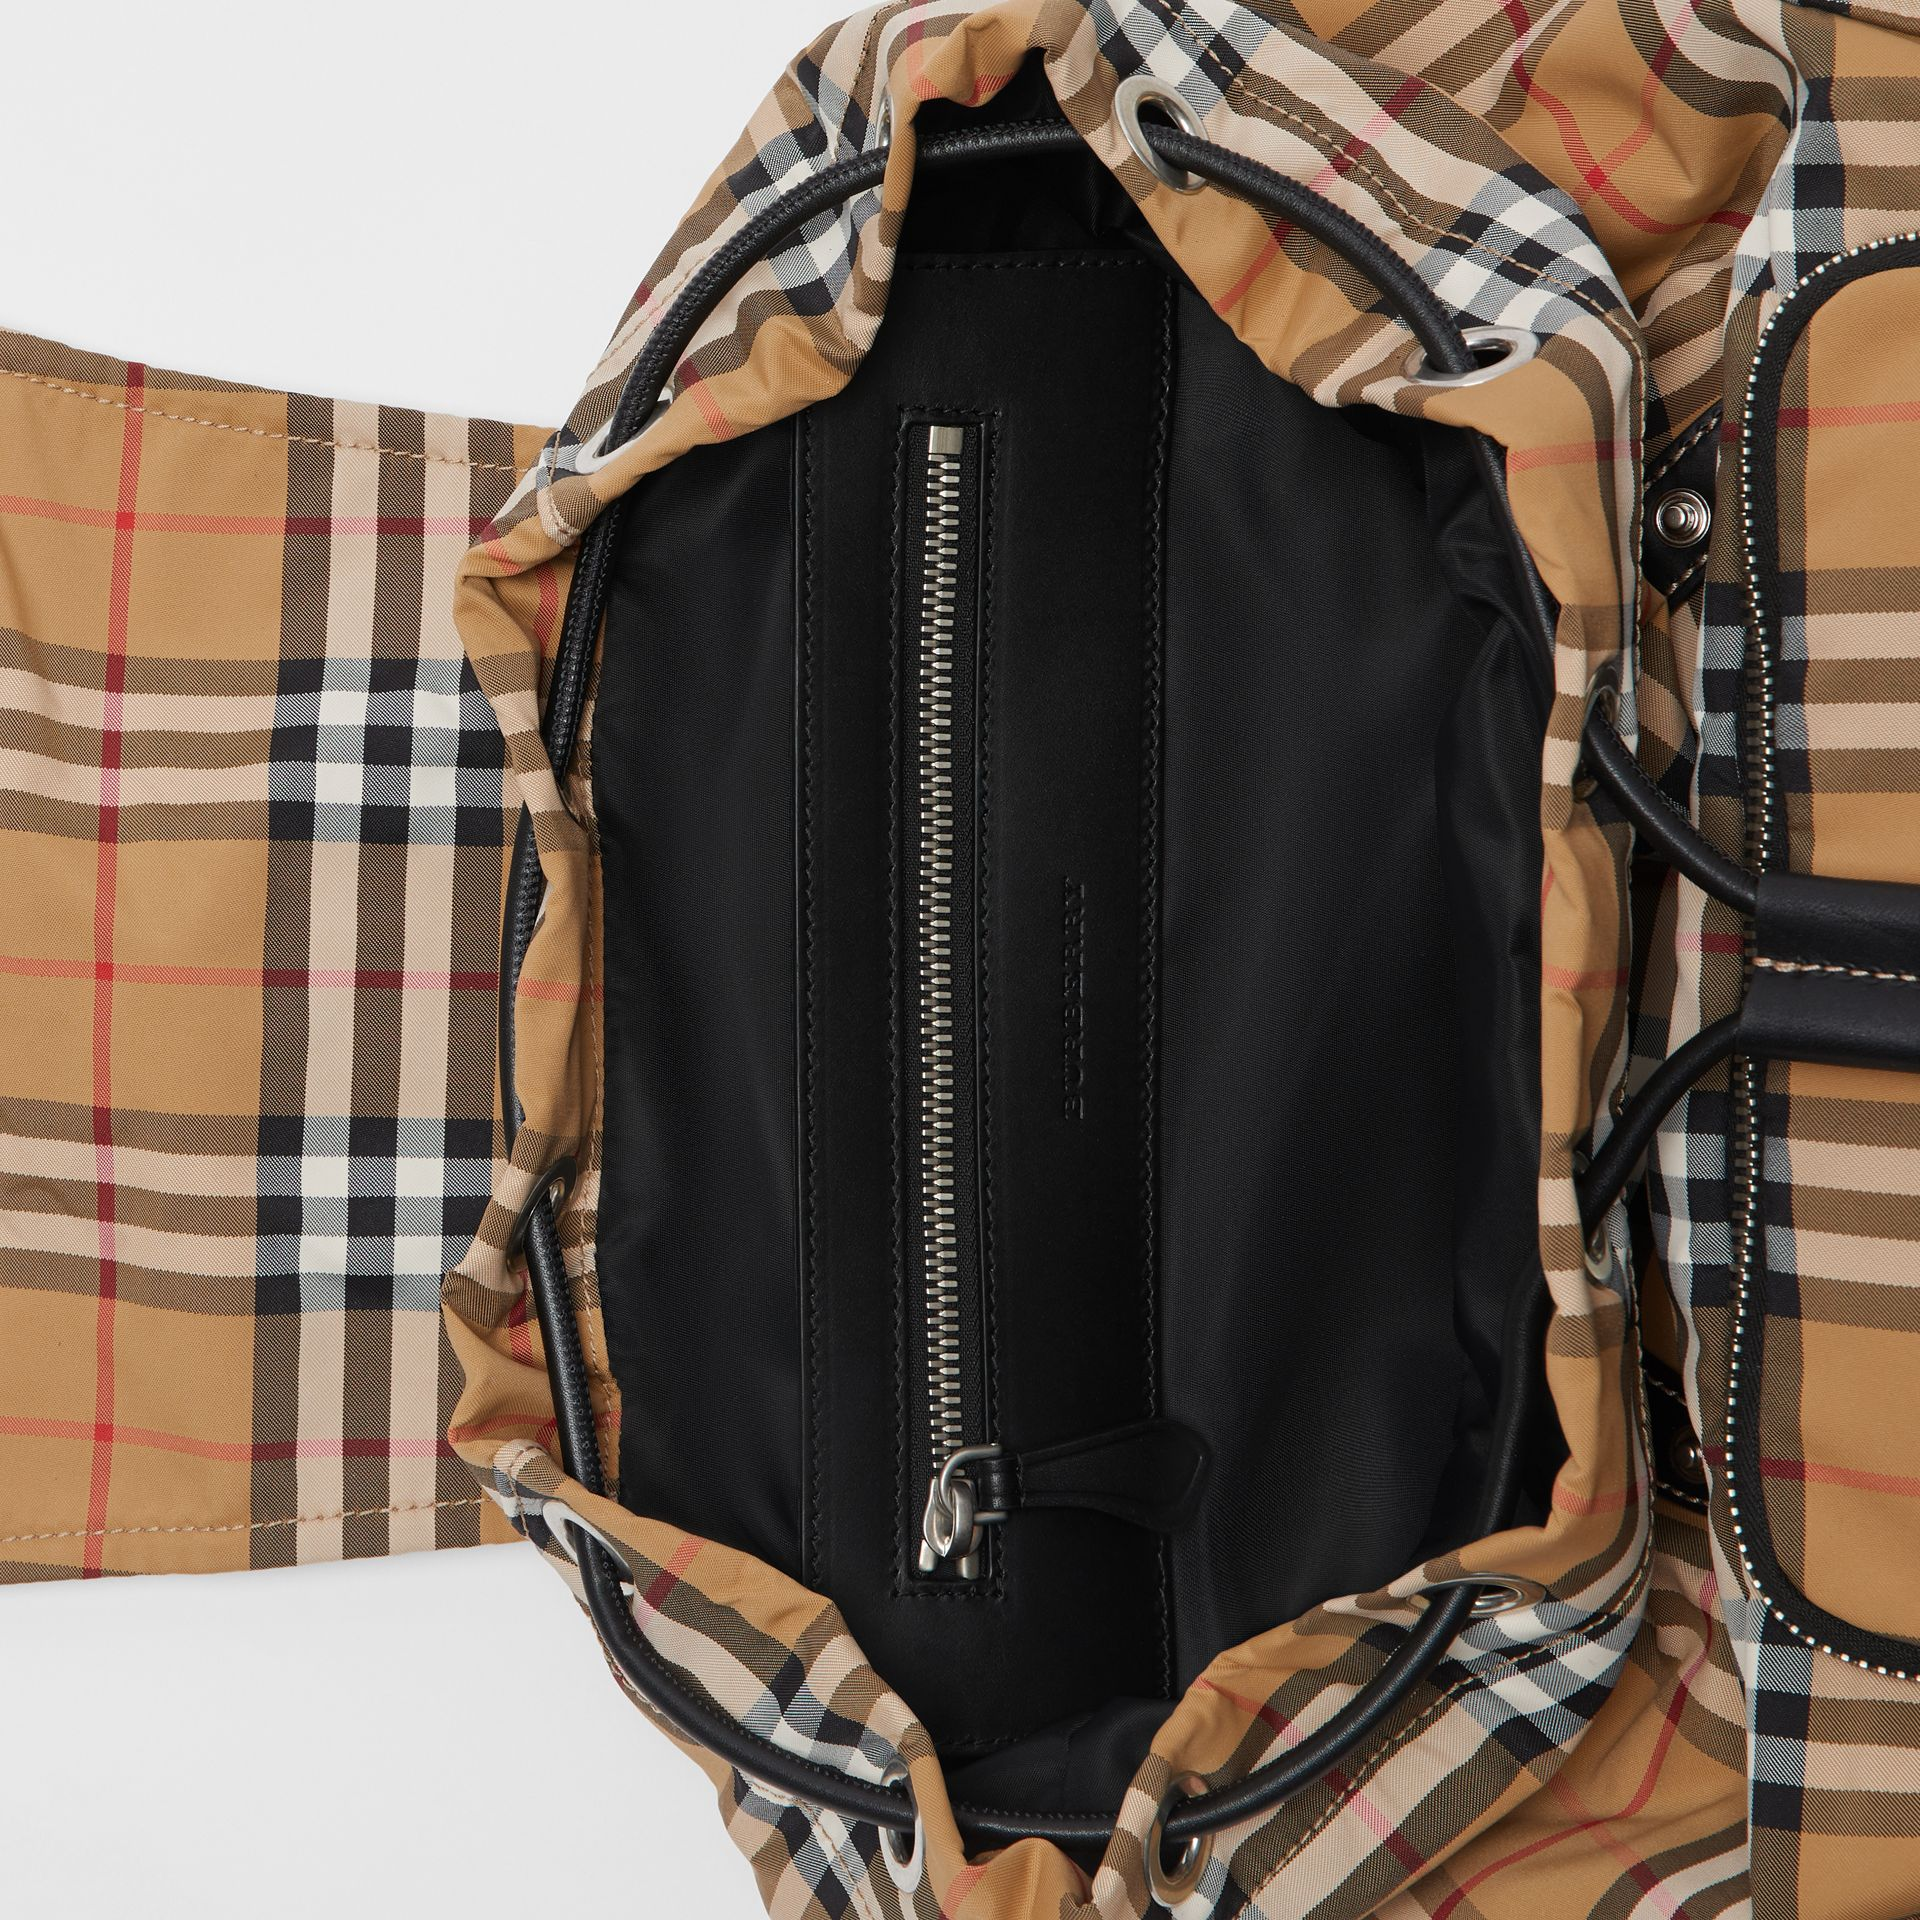 Grand sac The Rucksack en nylon à motif Vintage check (Jaune Antique) - Homme | Burberry - photo de la galerie 4